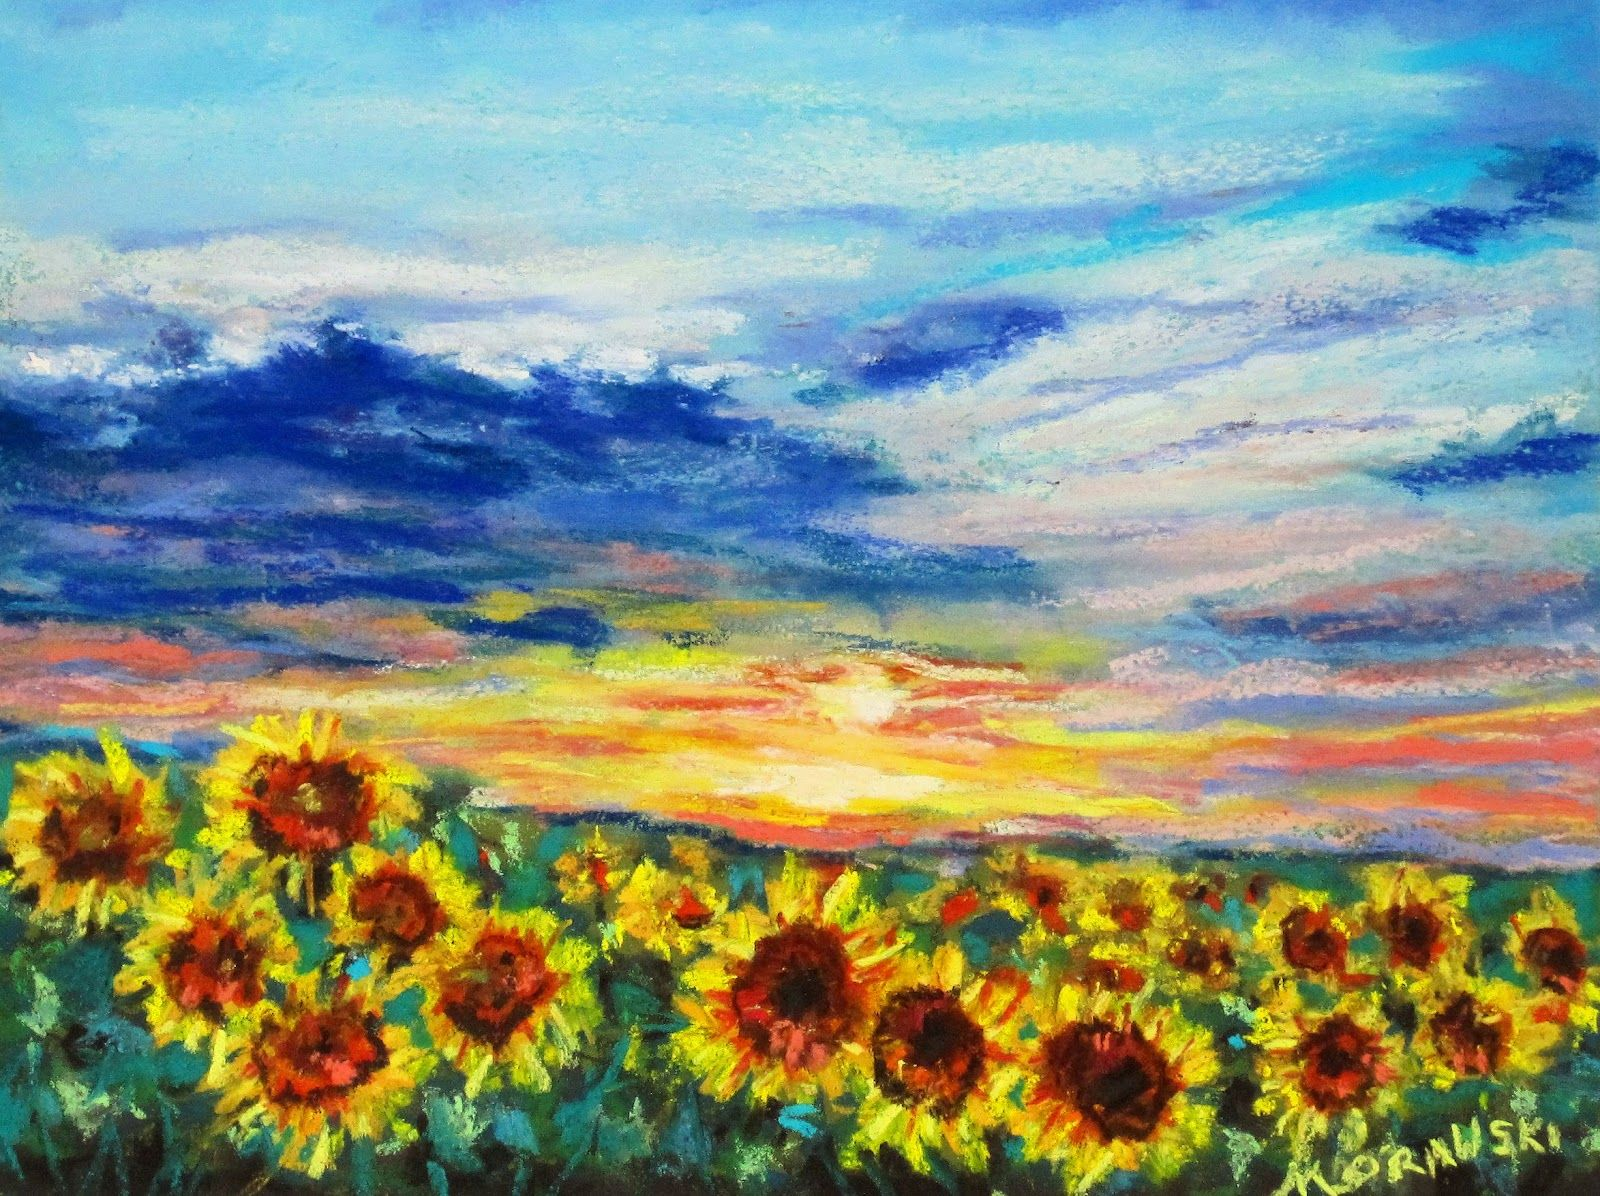 Raining Possibilities Painting Sunflowers And A Sunrise